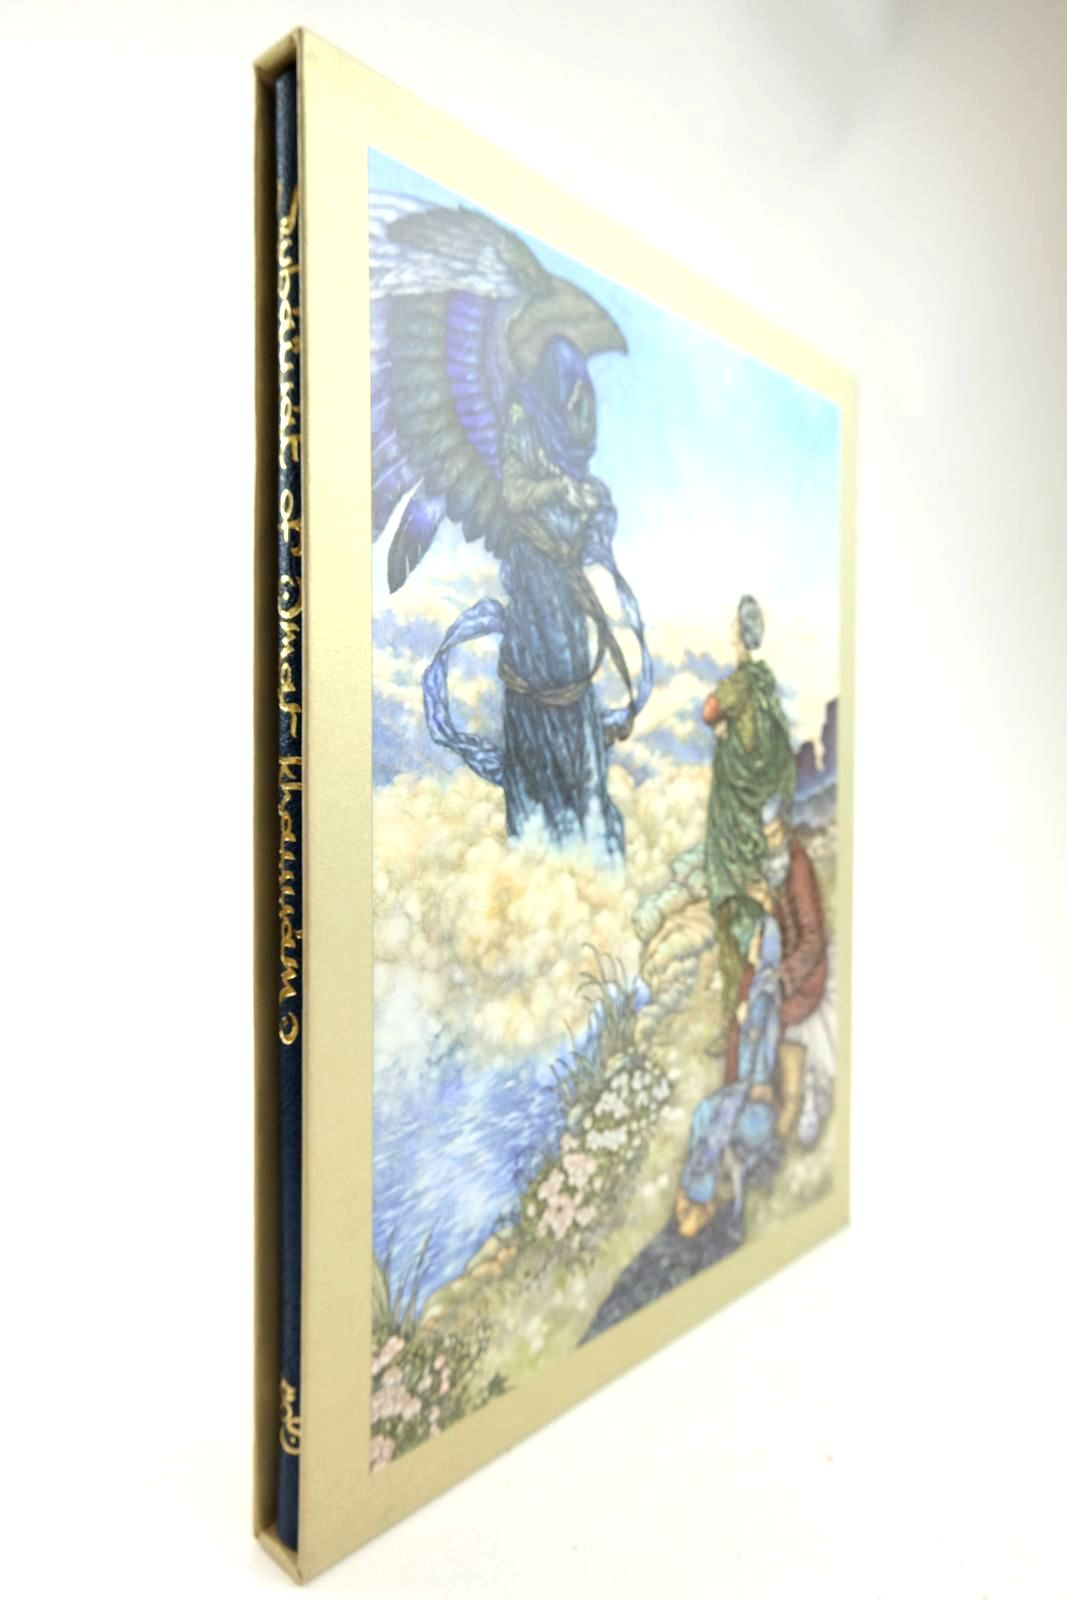 Photo of RUBAIYAT OF OMAR KHAYYAM written by Khayyam, Omar Fitzgerald, Edward Byatt, A.S. illustrated by Puttapipat, Niroot Raw, Stephen published by Folio Society (STOCK CODE: 2133374)  for sale by Stella & Rose's Books